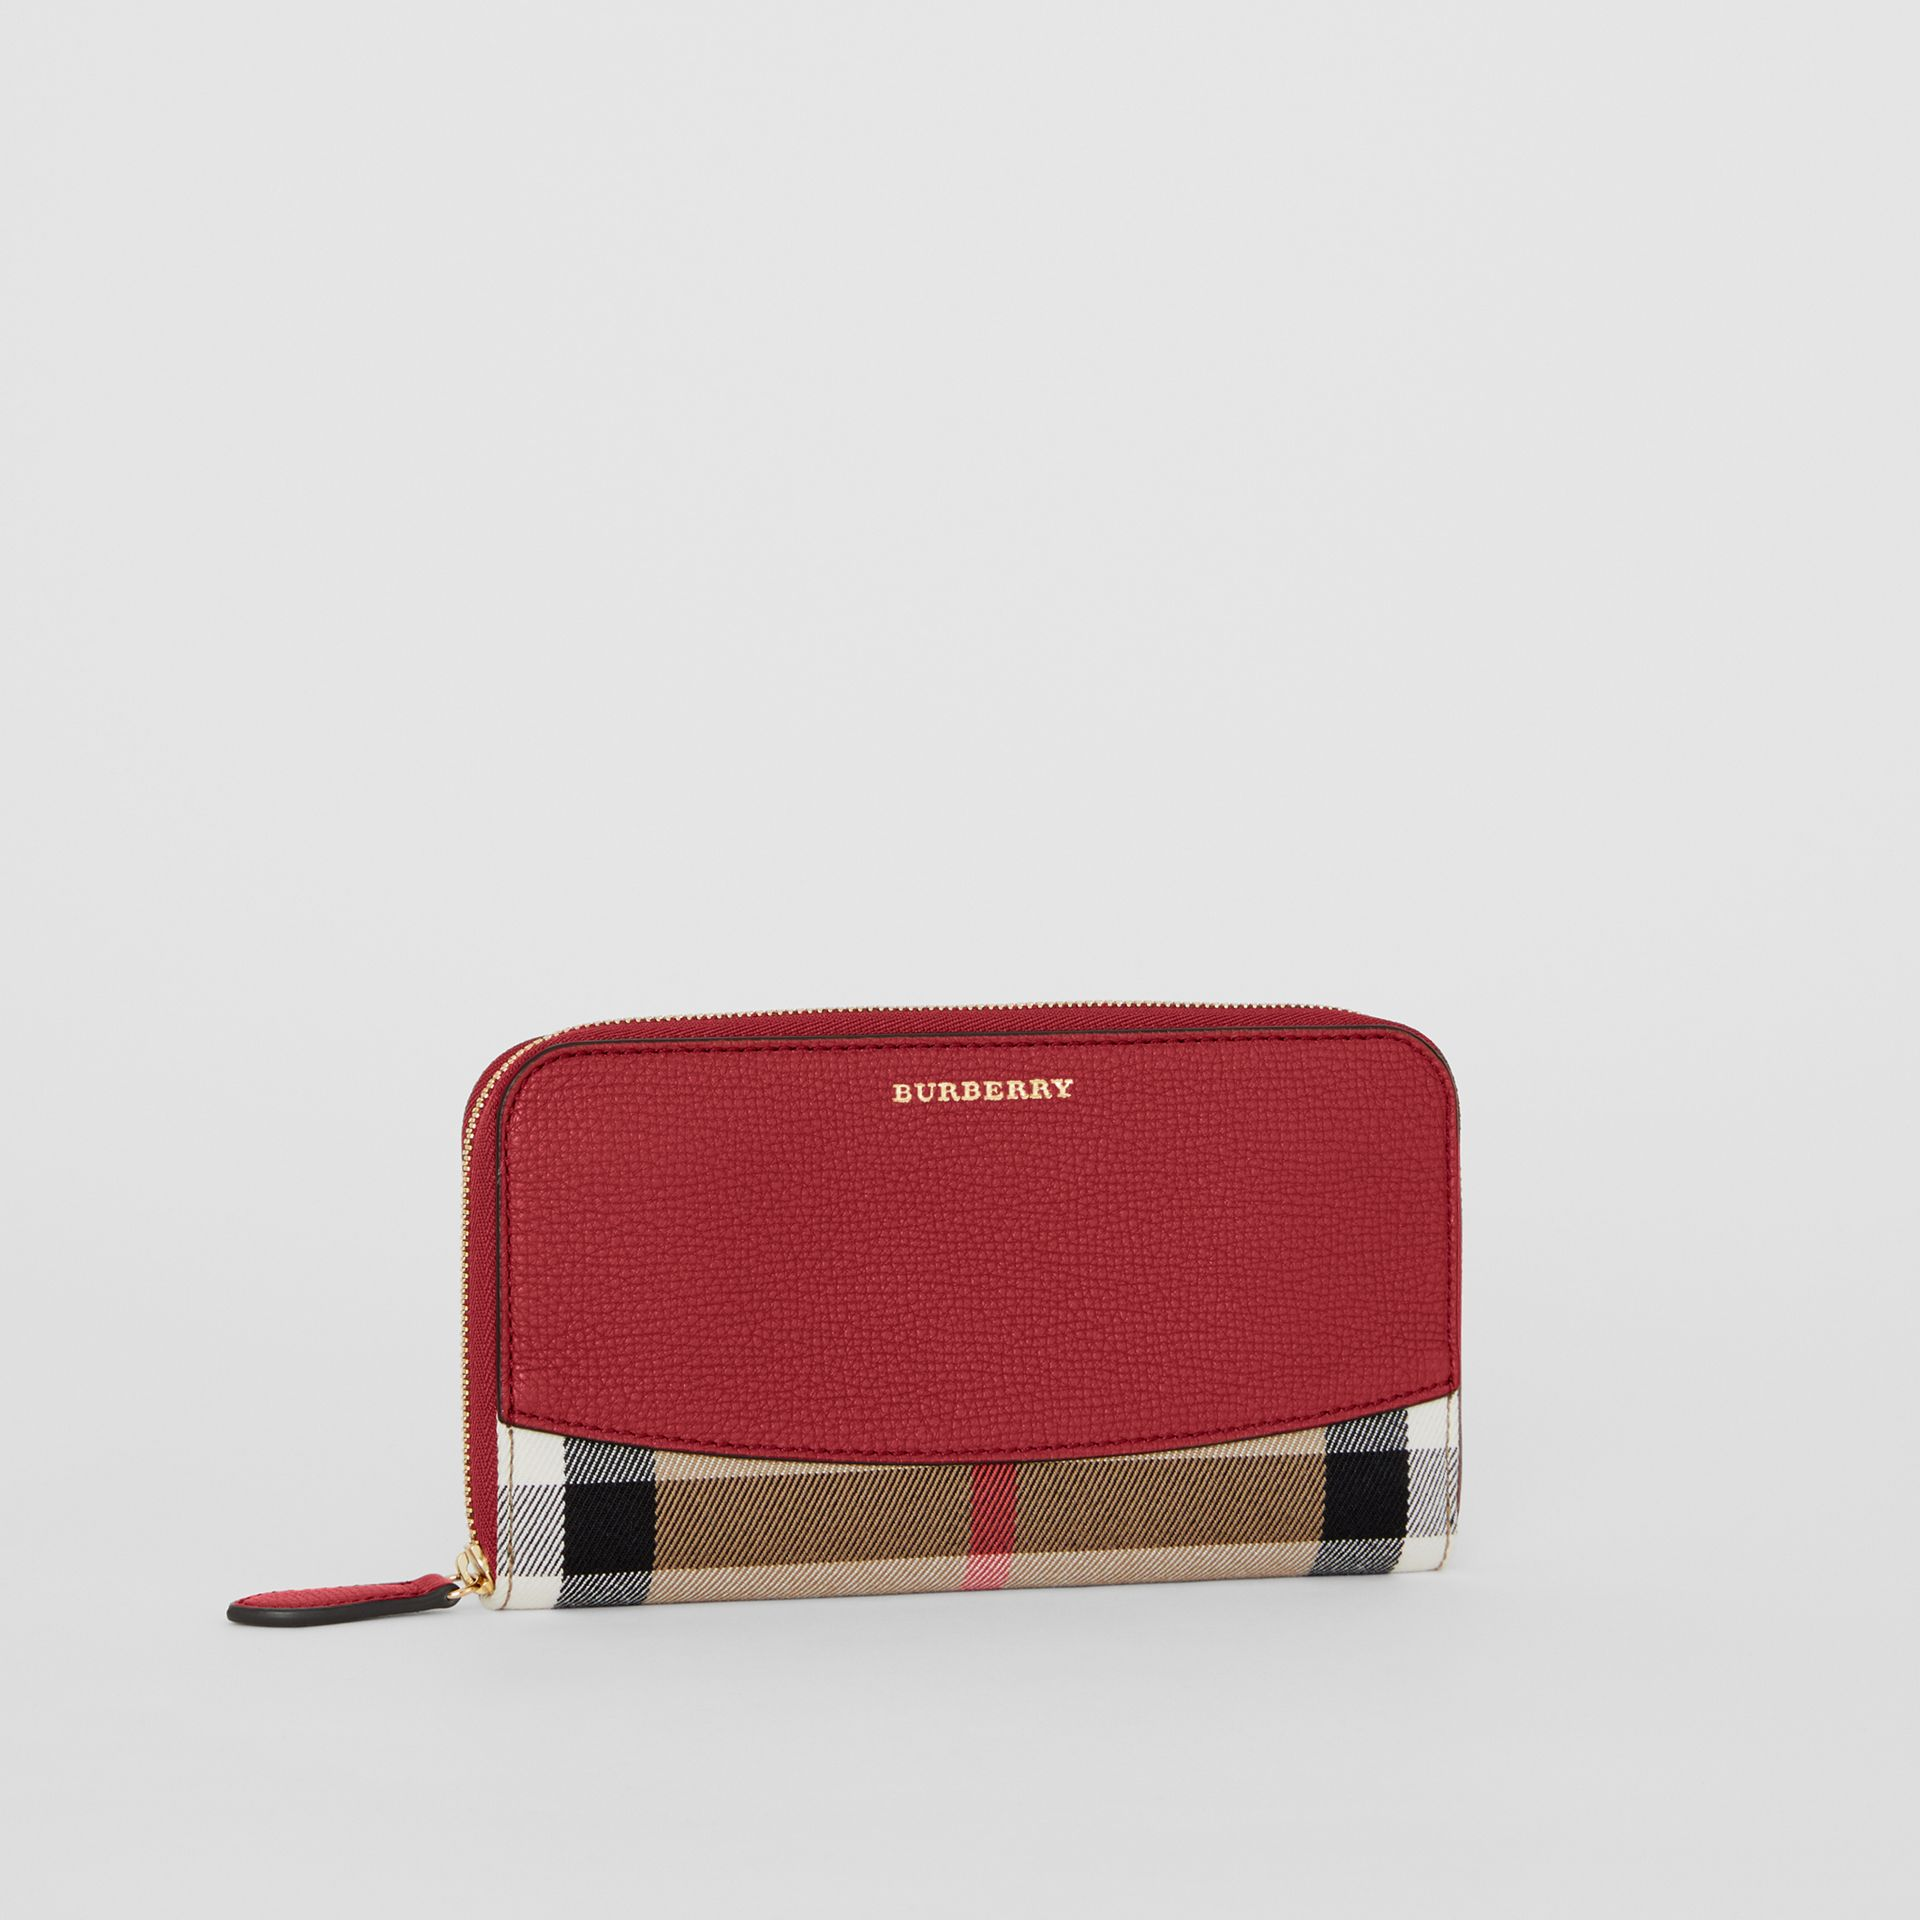 House Check and Leather Ziparound Wallet in Russet Red - Women | Burberry - gallery image 3